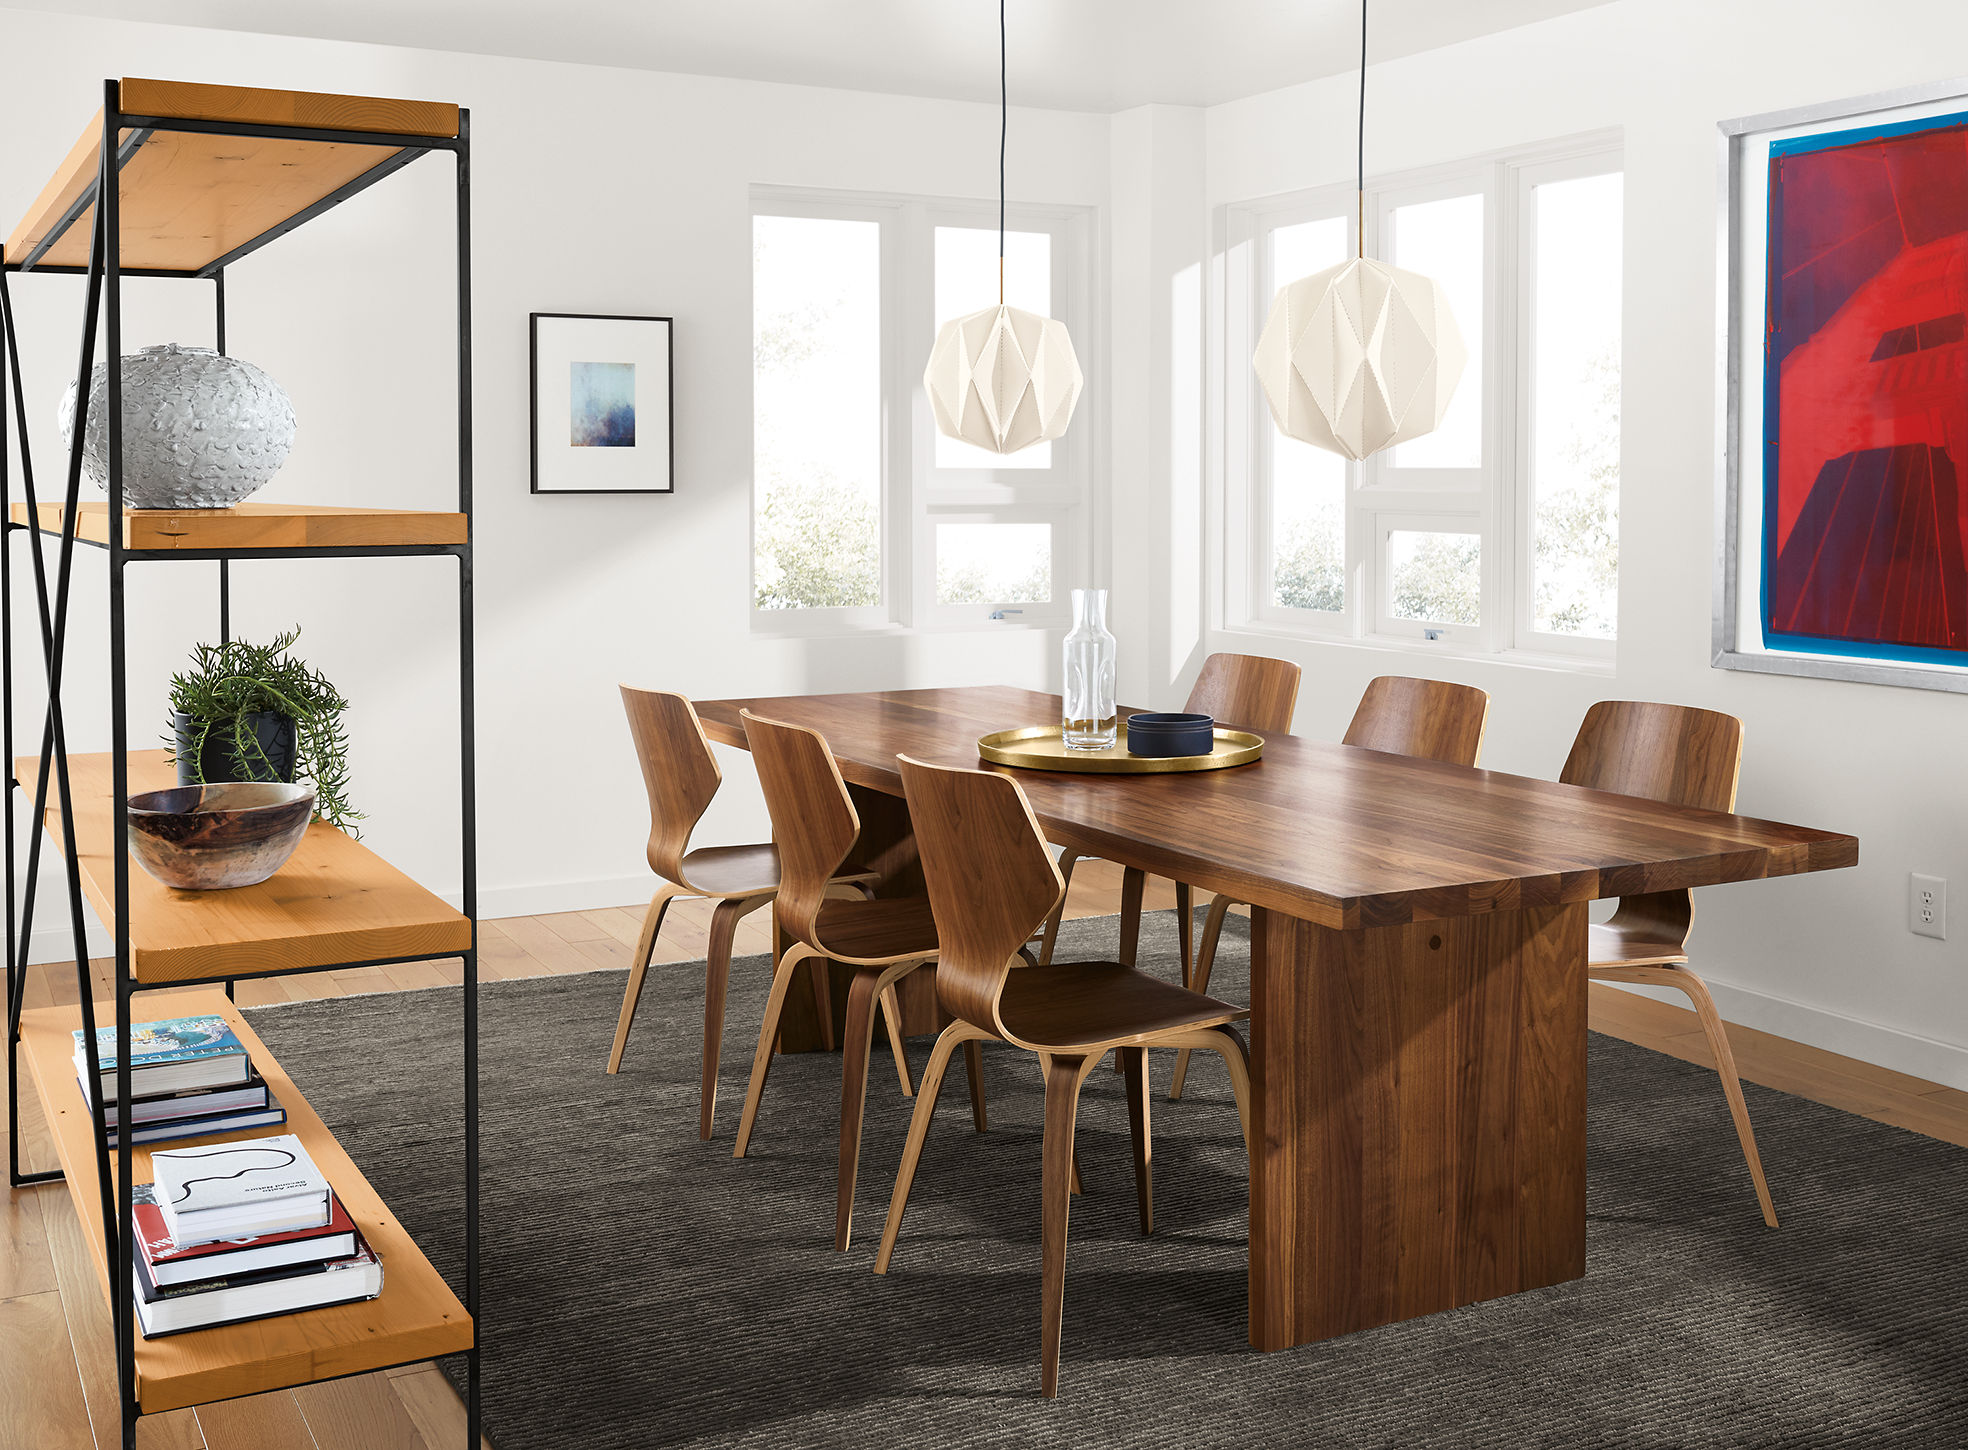 Keep the conversation flowing with these great modern dining sets